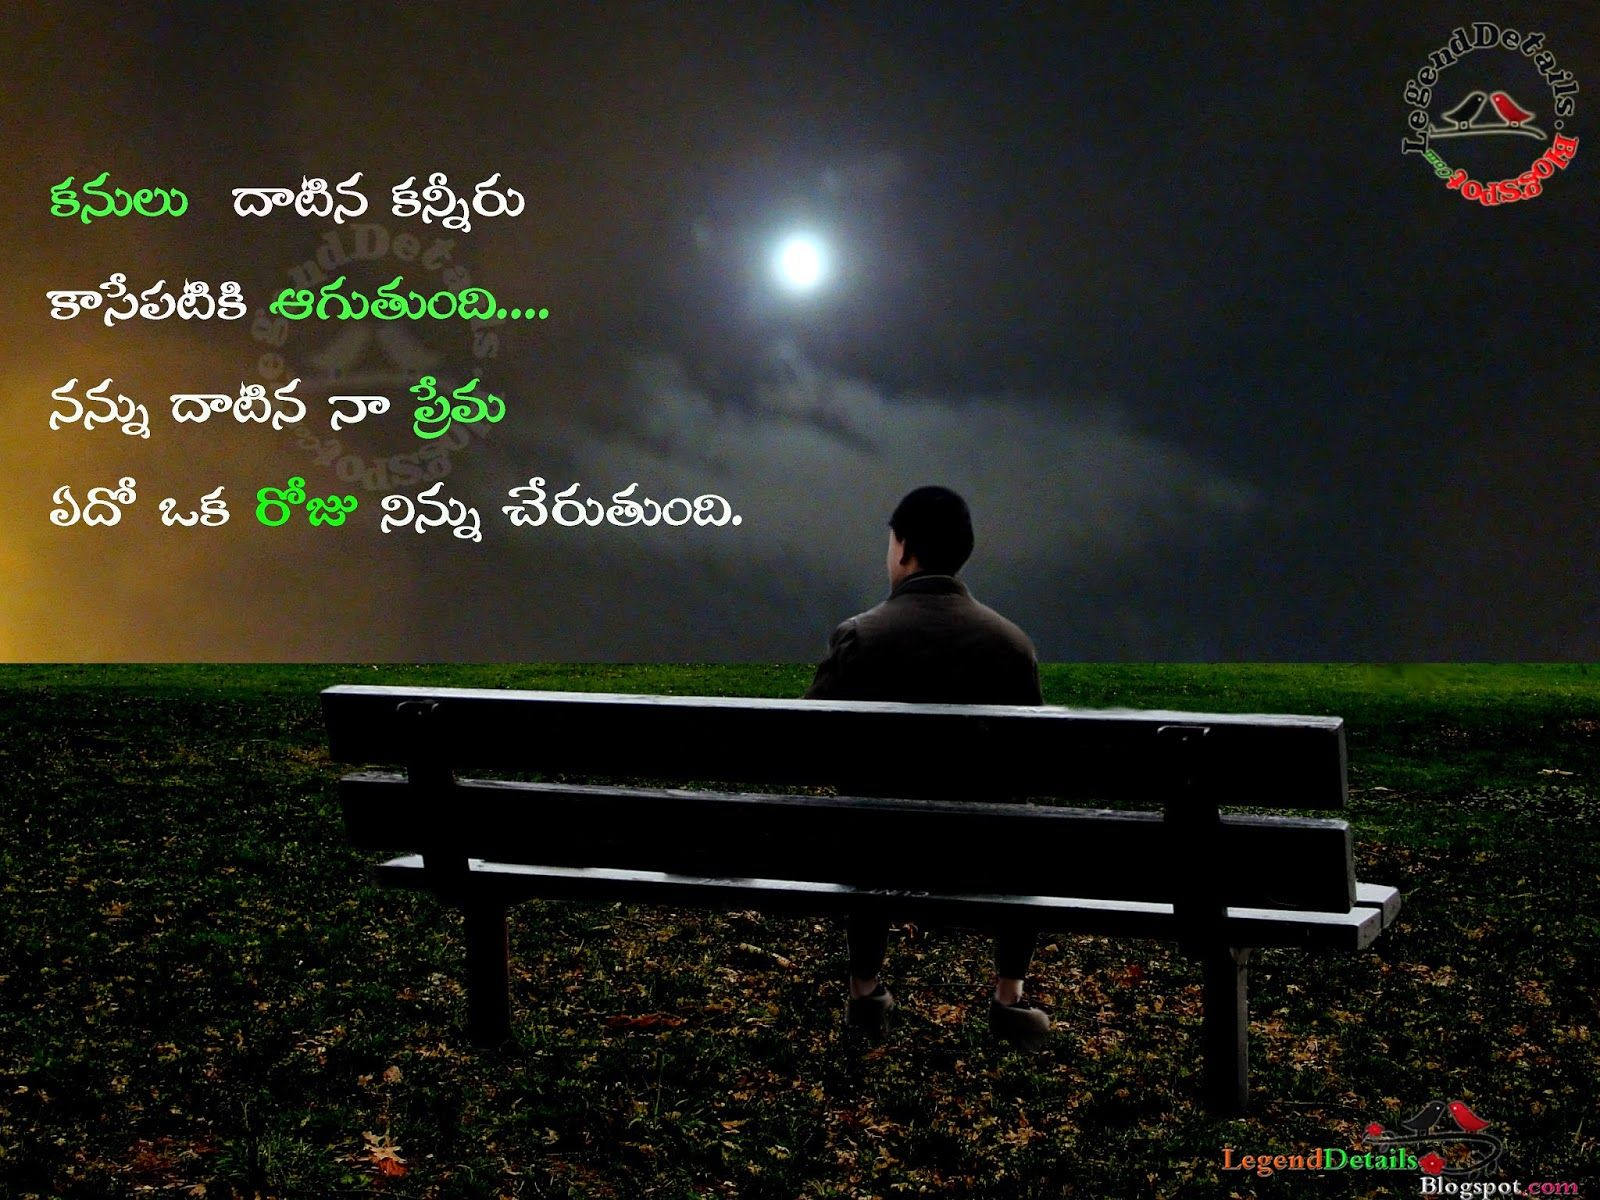 A blog about telugu love quotes telugu love letters friendship a blog about telugu love quotes telugu love letters friendship quotes hindi quotes thecheapjerseys Gallery